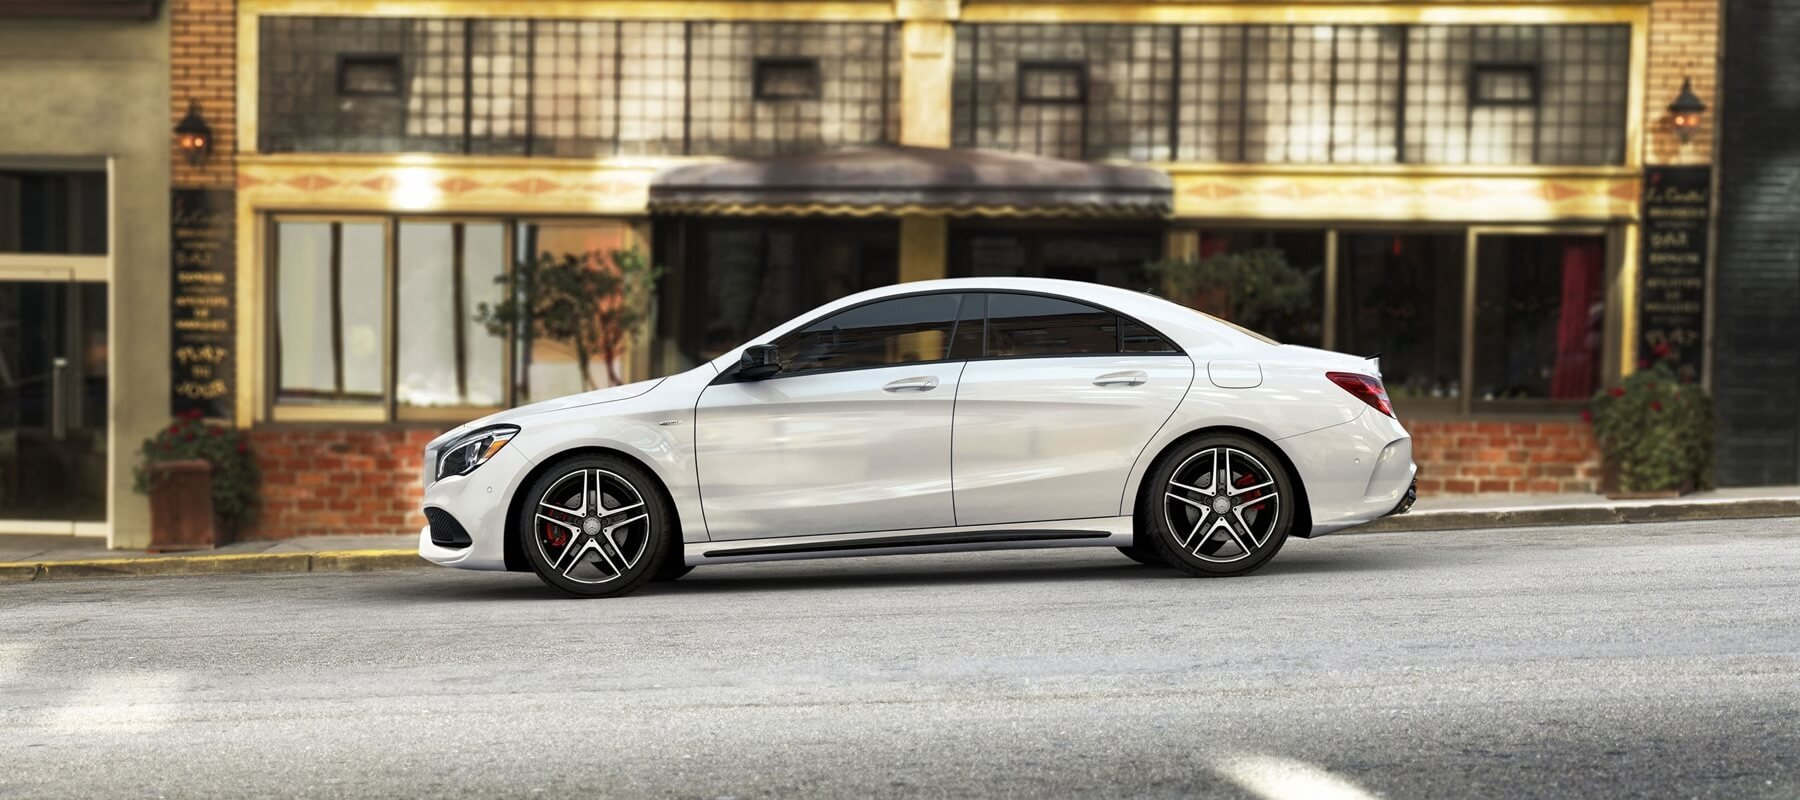 2017 Mercedes-Benz CLA Coupe Side View white exterior model